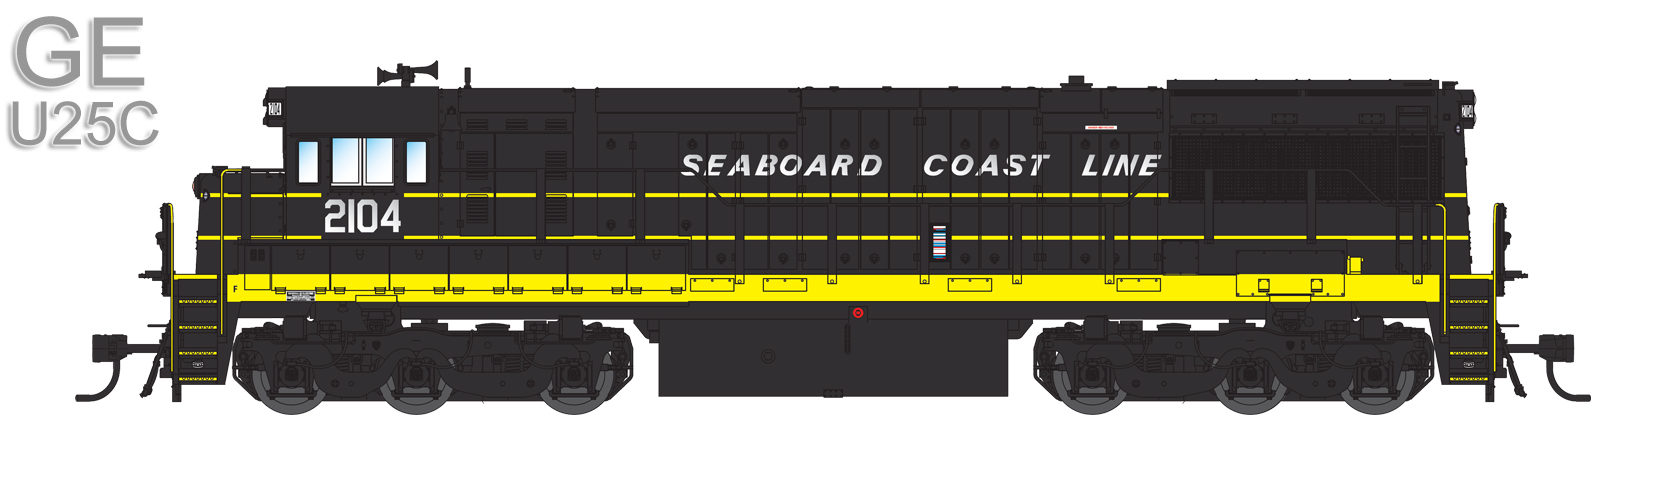 Seaboard Coast Line (Coming Soon): 2104, 2109